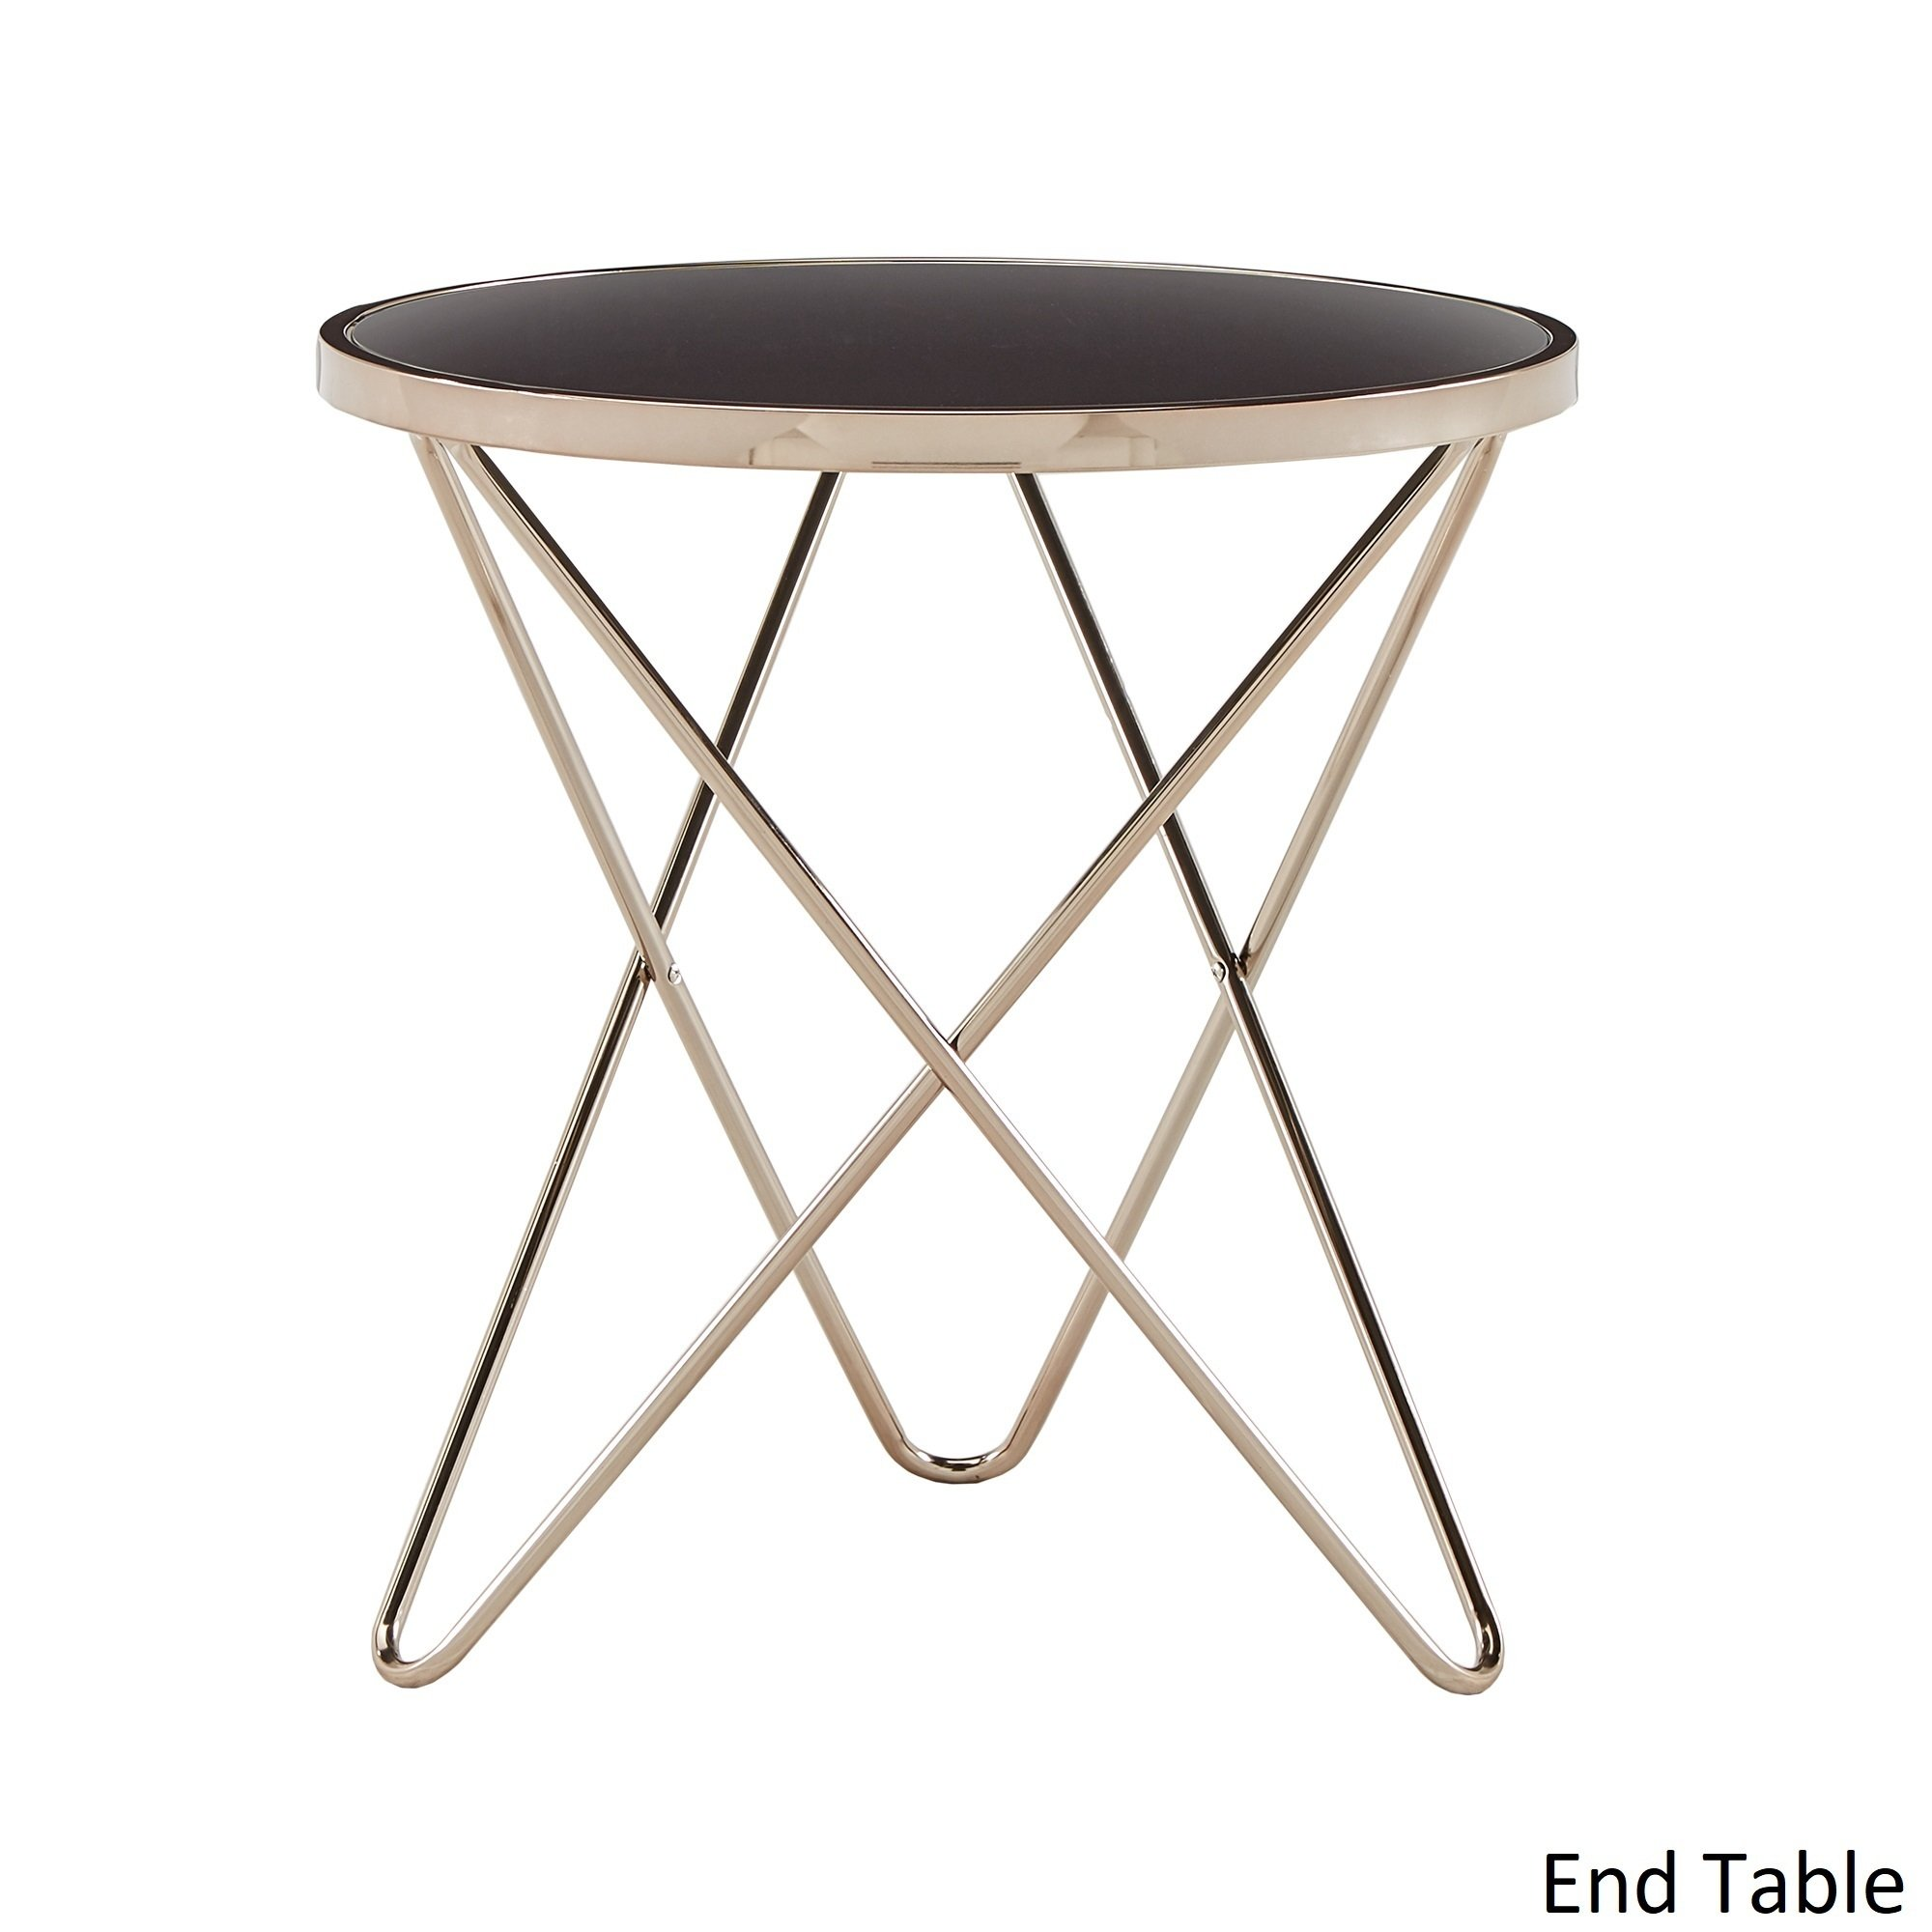 gabe champagne gold finish hairpin leg accent tables with black glass top inspire bold room essentials table free shipping today legs small ginger jar lamps round entry cool